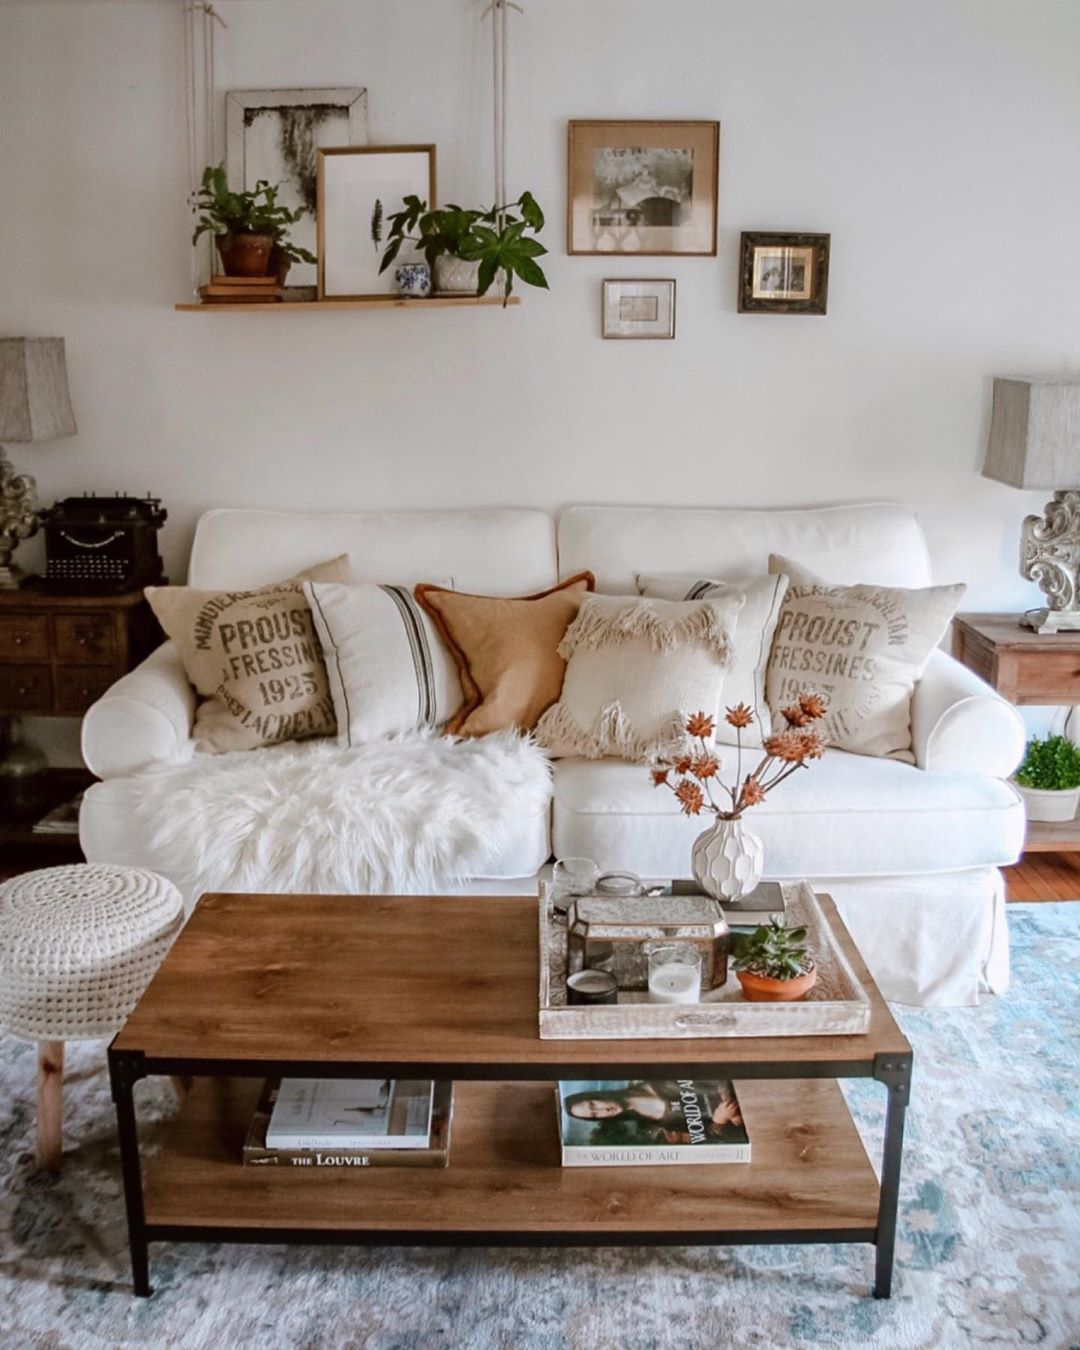 14 Really Cute College Apartment Ideas You Need To See By Sophia Lee In 2020 College Apartment Decor Living Room Decor Apartment College Living Rooms College living room decor